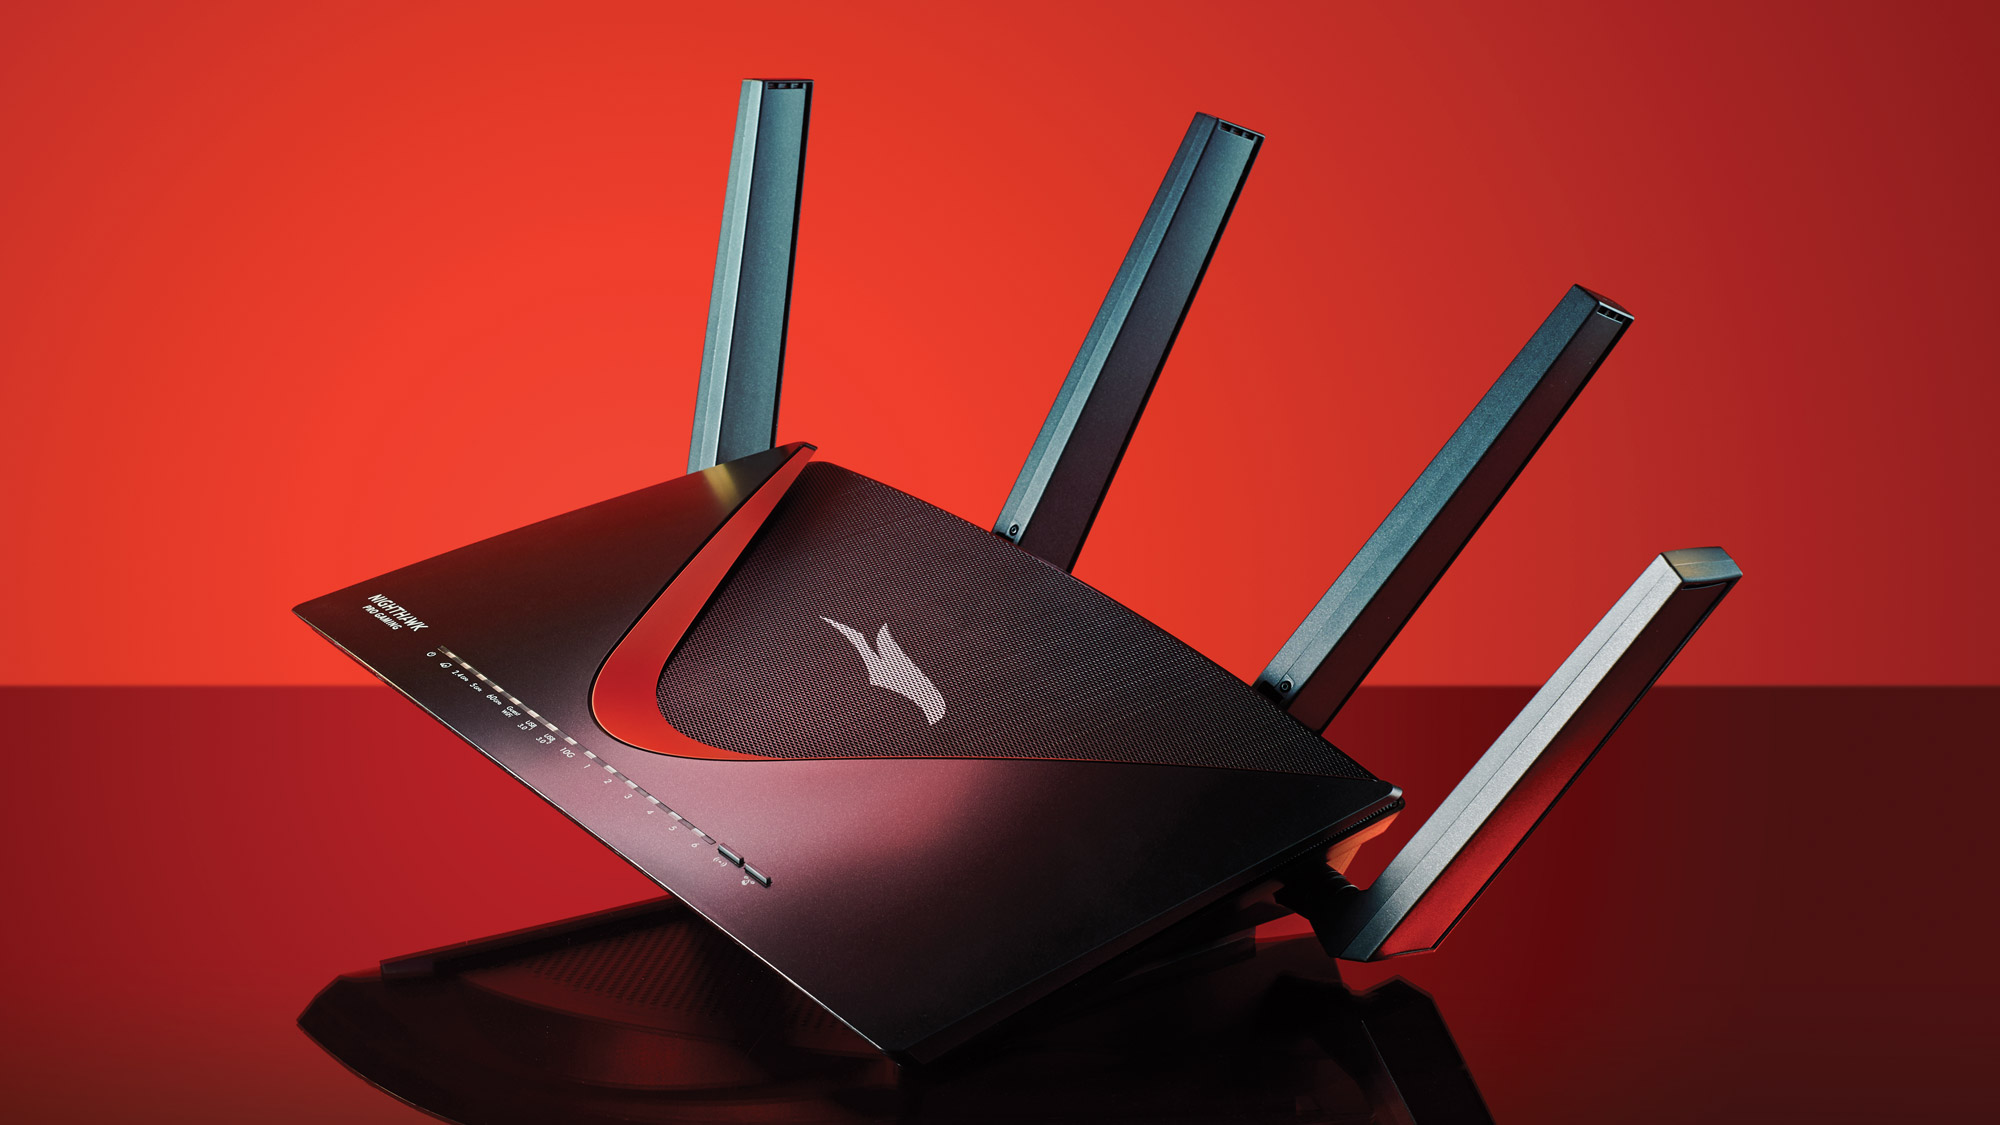 Best Modem Router 2021 Best gaming router 2020: the top routers for gaming | TechRadar